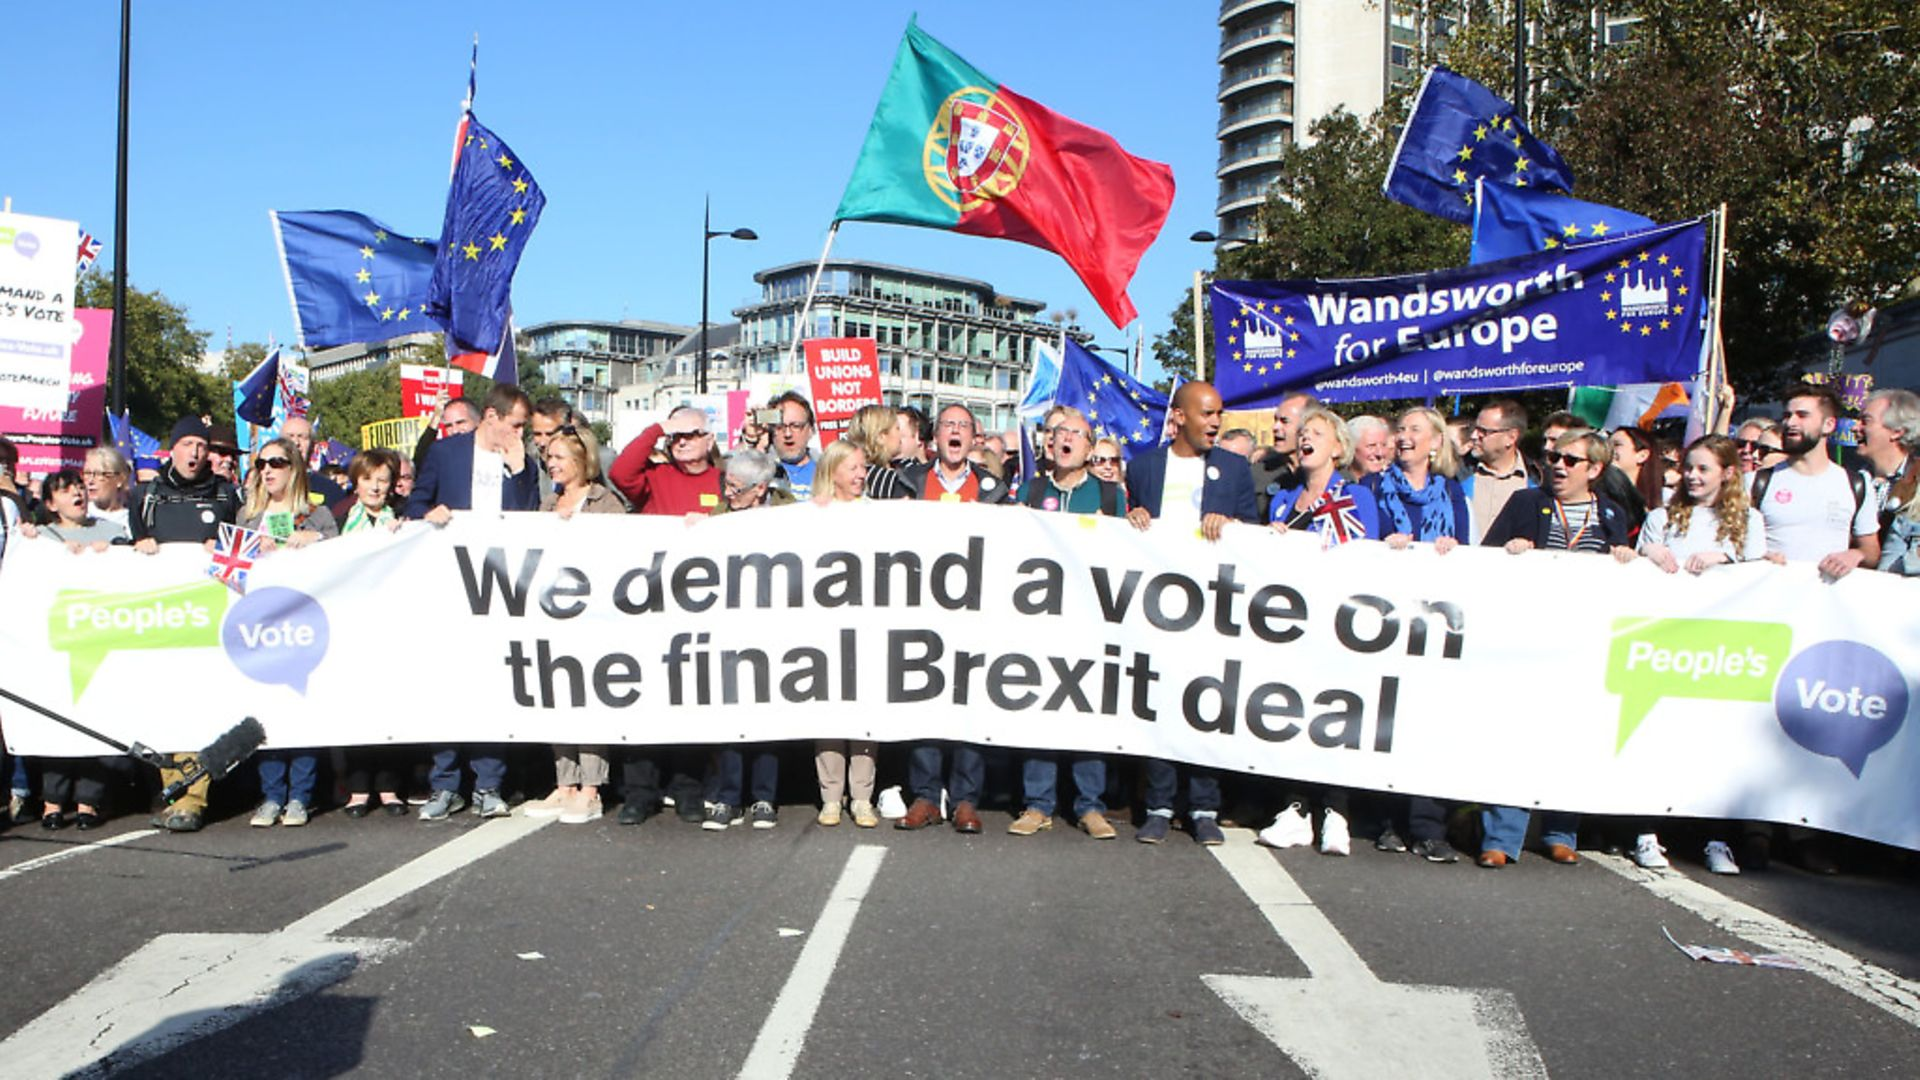 Peoples Vote on the final Brexit deal. Photo by Nicola Tree/Getty Images. - Credit: Getty Images